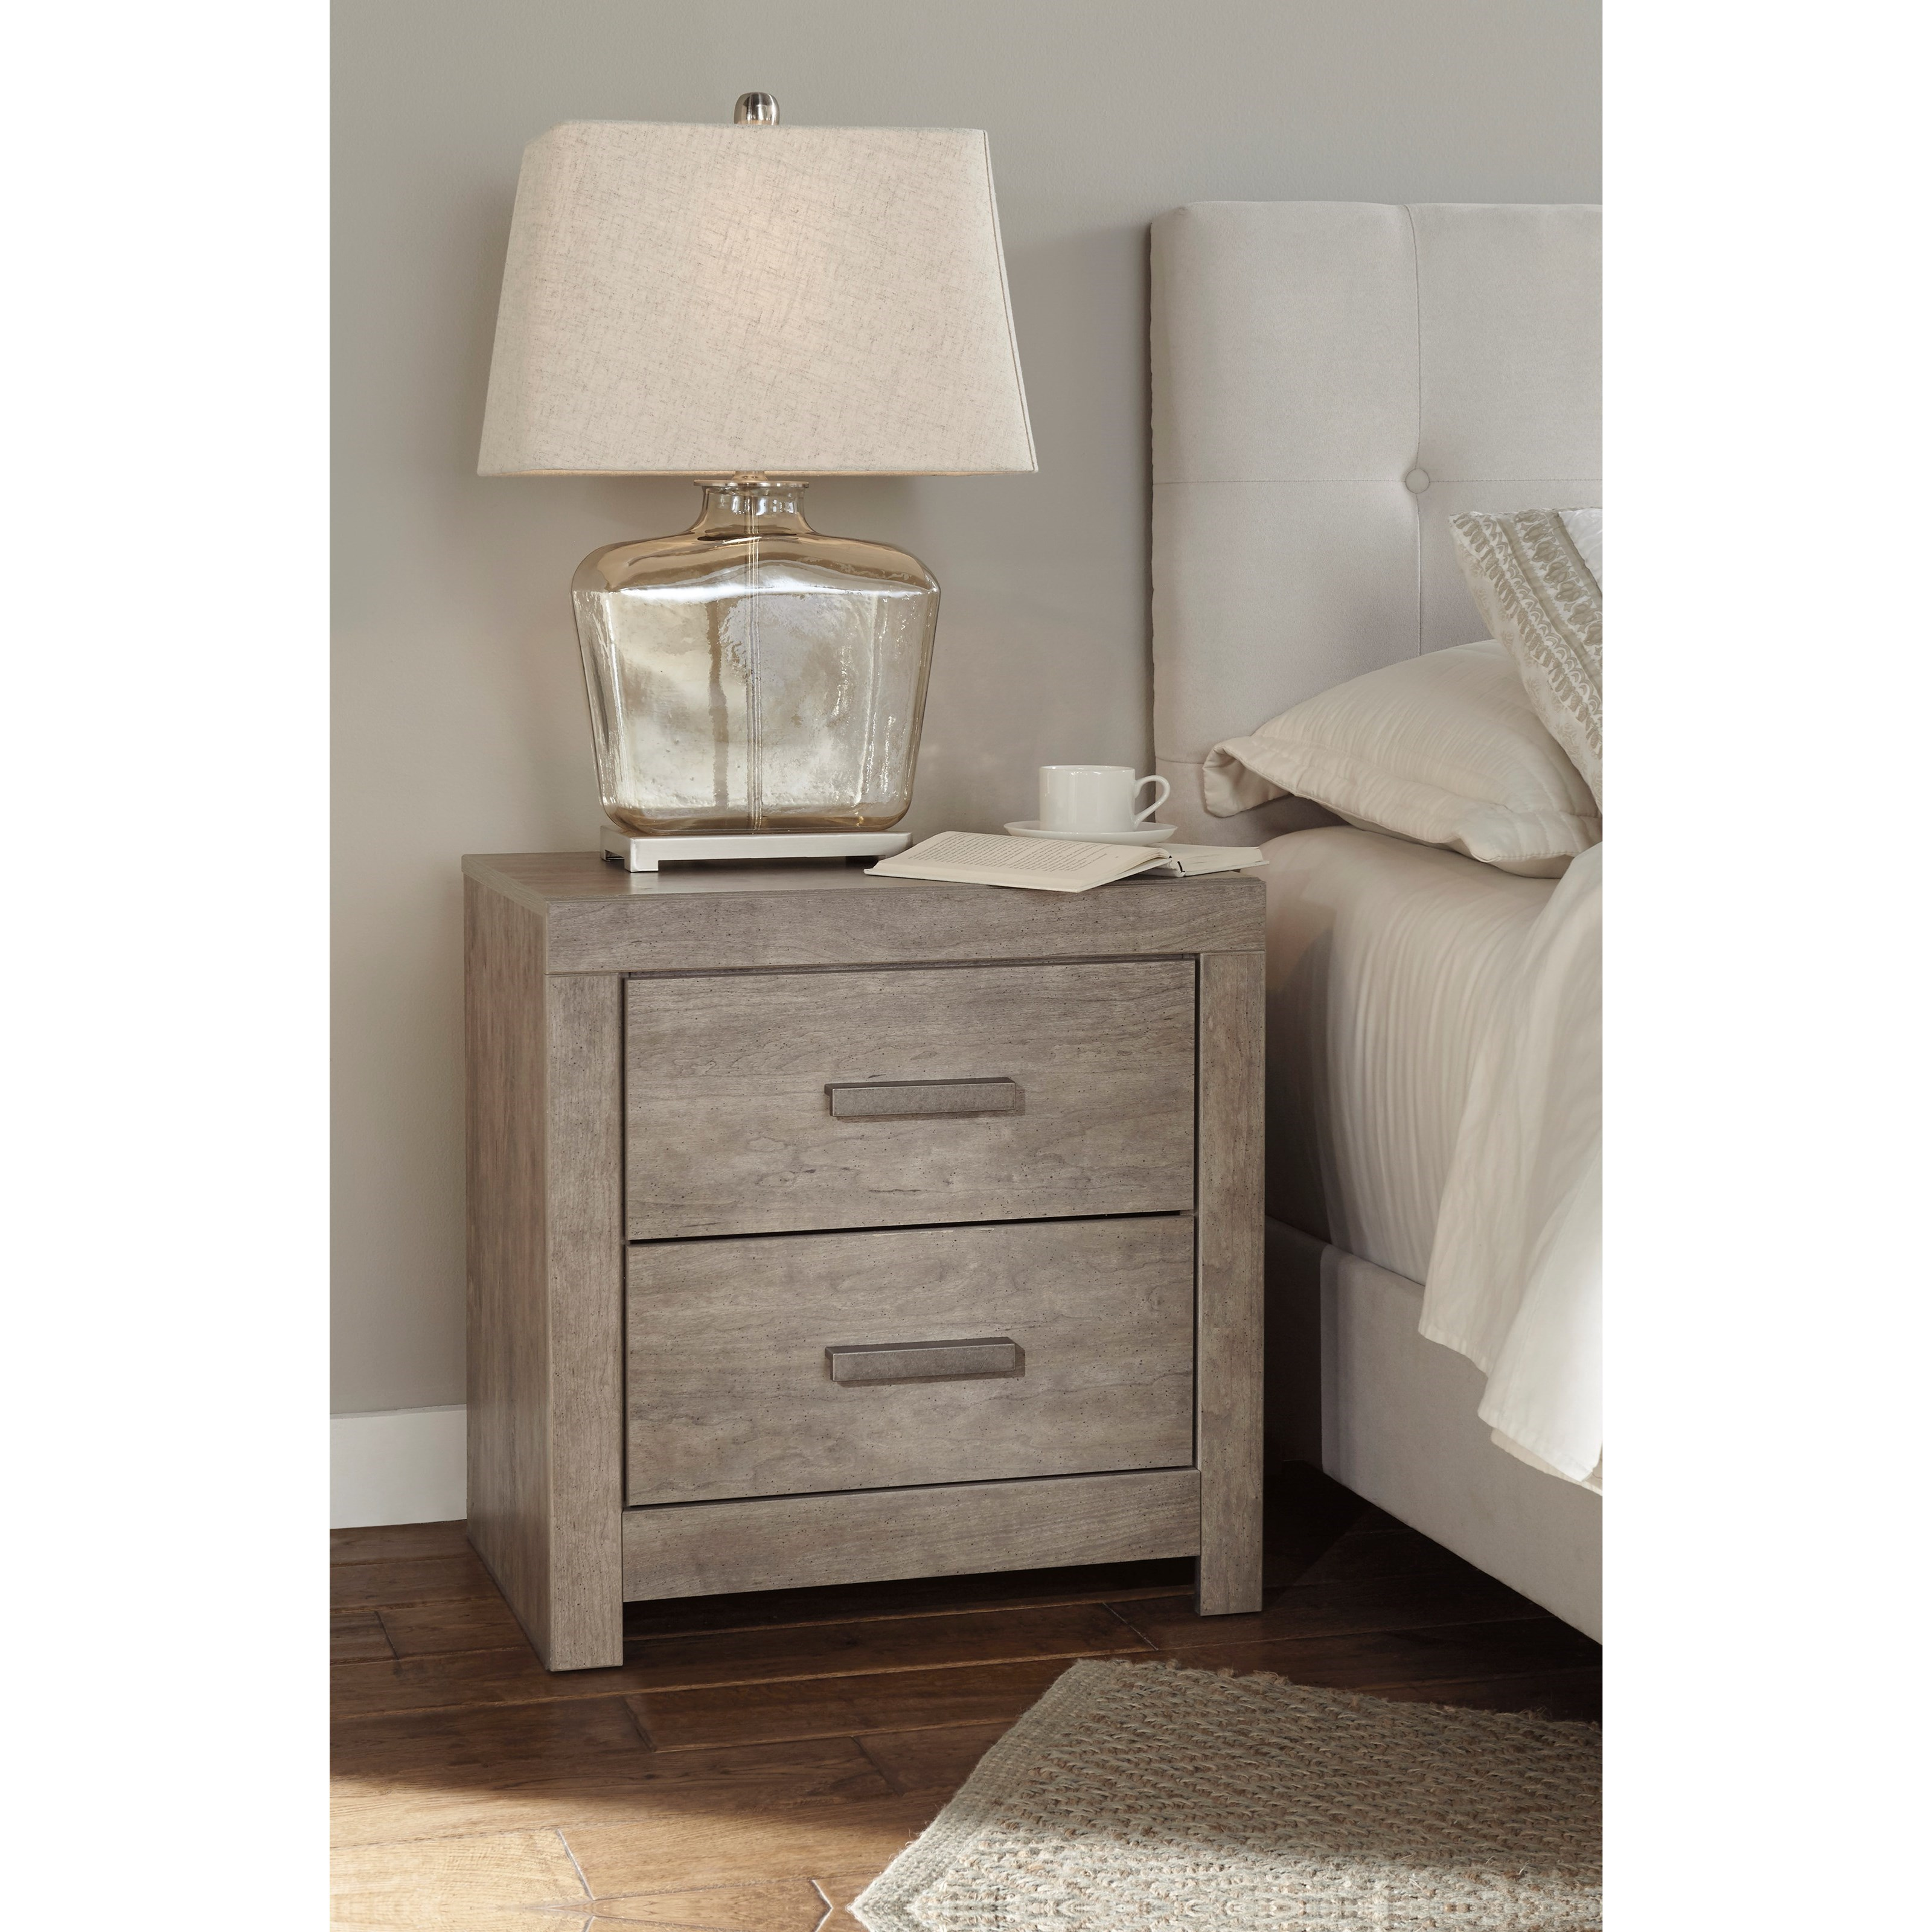 Signature design by ashley culverbach b070 92 contemporary for Spring hill designs bedroom furniture